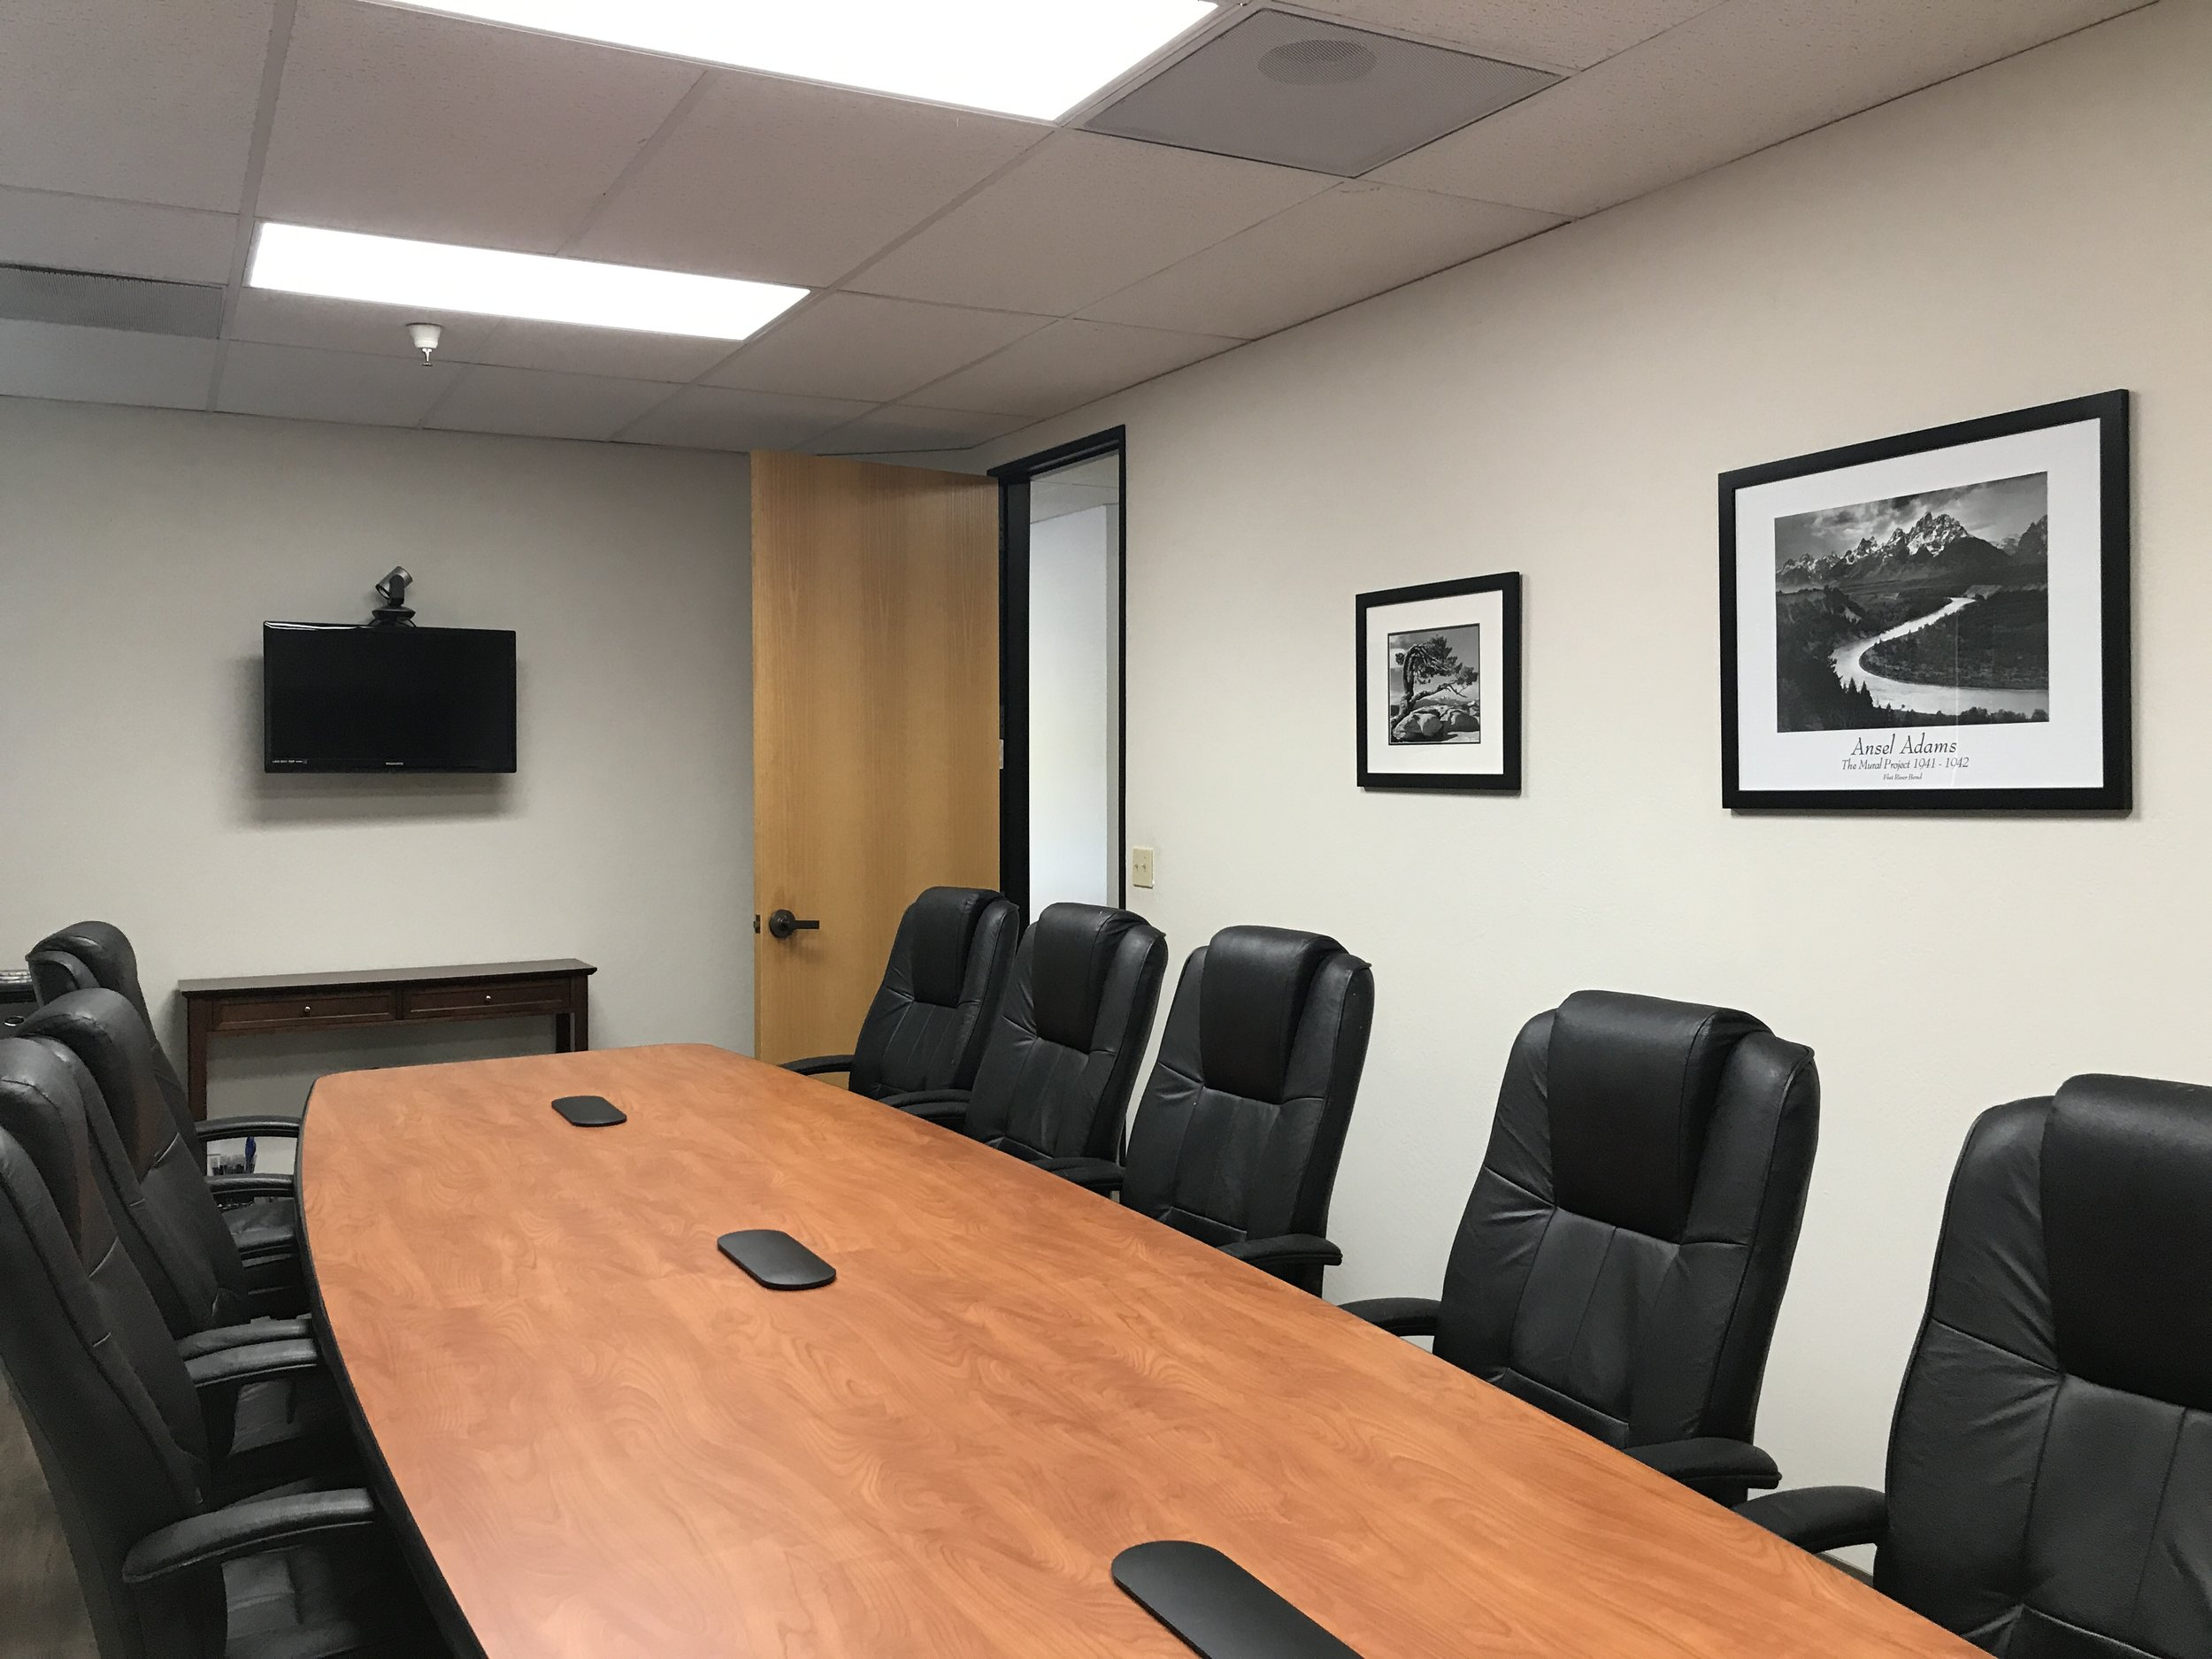 Conference Room 1 - $65/hr - Video conferencing available.